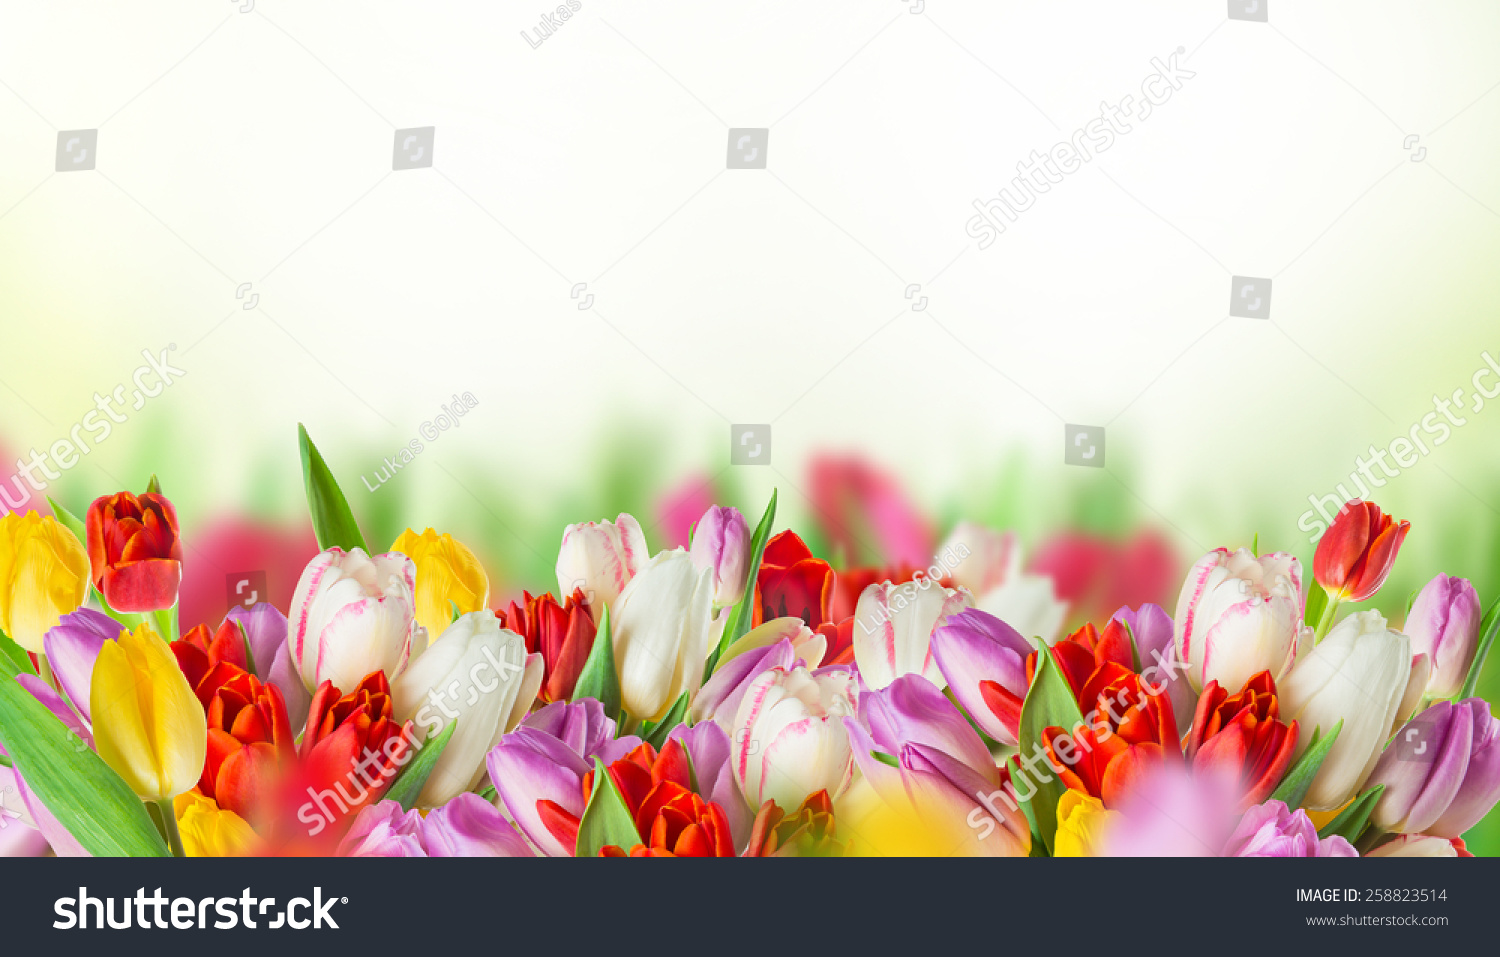 Tulips Over Blurred Green Background And Exotic Butterflies Bouquet